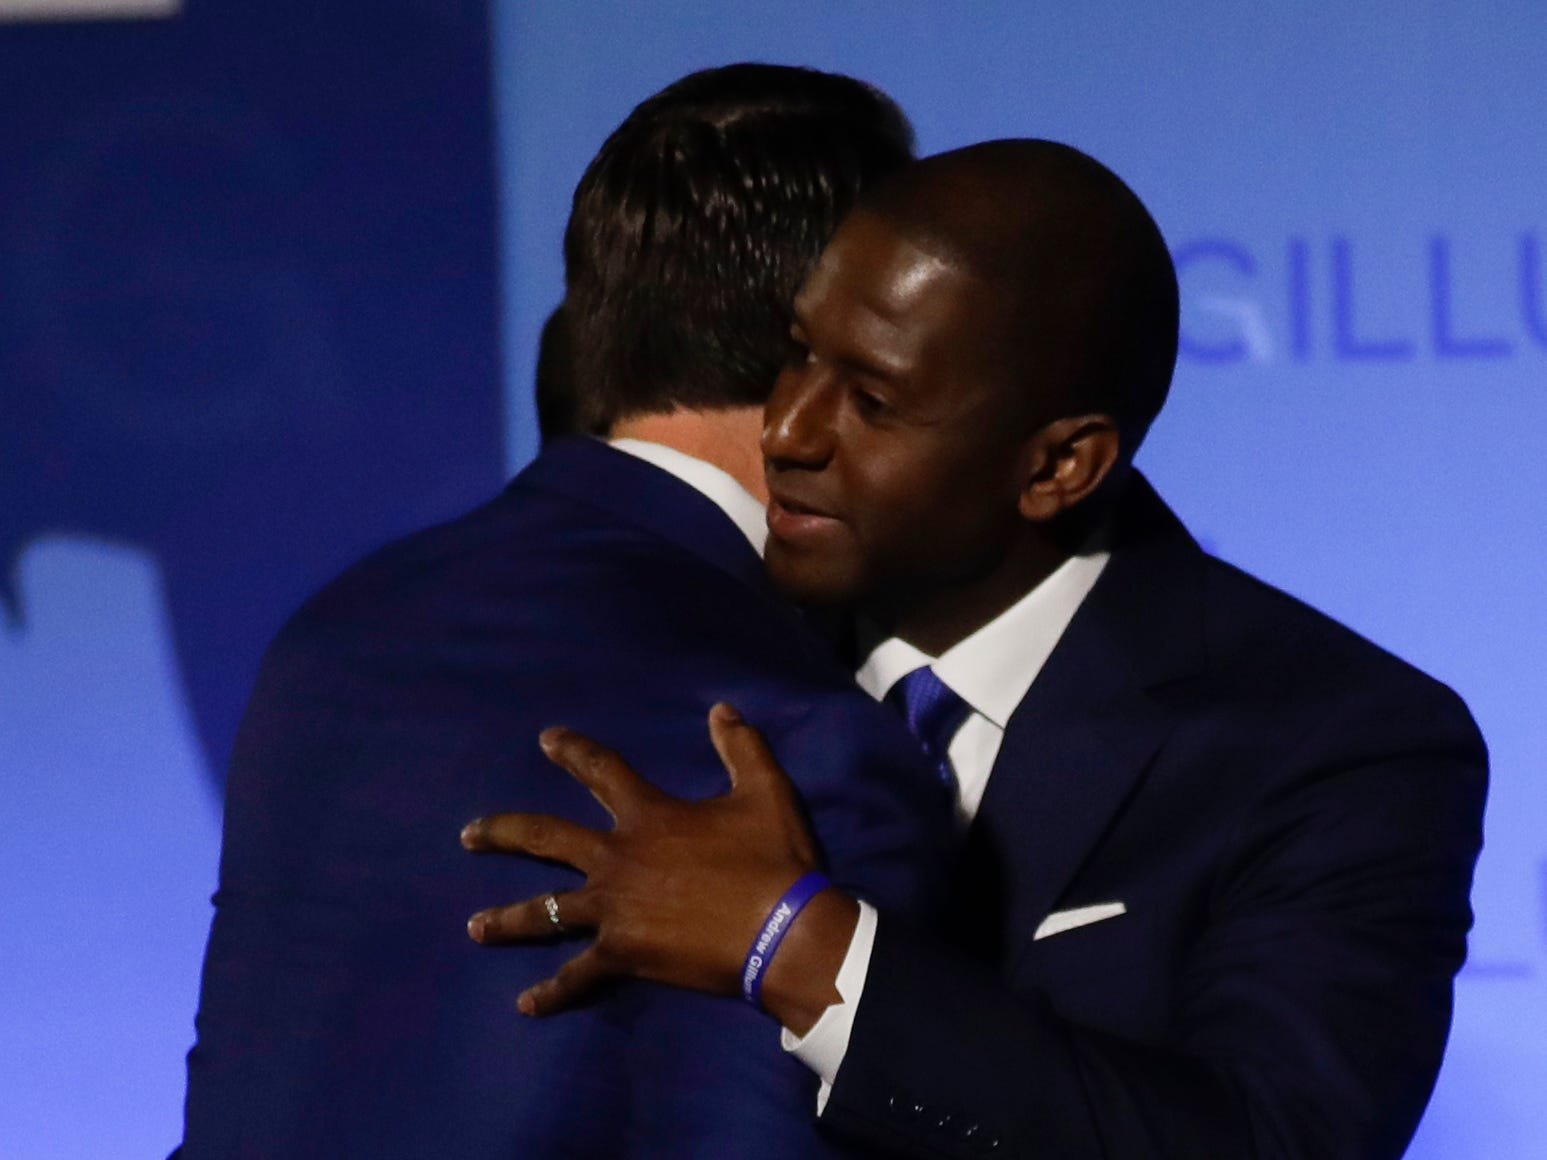 Andrew Gillum embraces his running mate Chris King as he makes his concession speech in front of Lee Hall on the Florida A&M campus in Tallahassee, Fla. after losing the governor's race to Ron DeSantis Tuesday, Nov. 6, 2018.